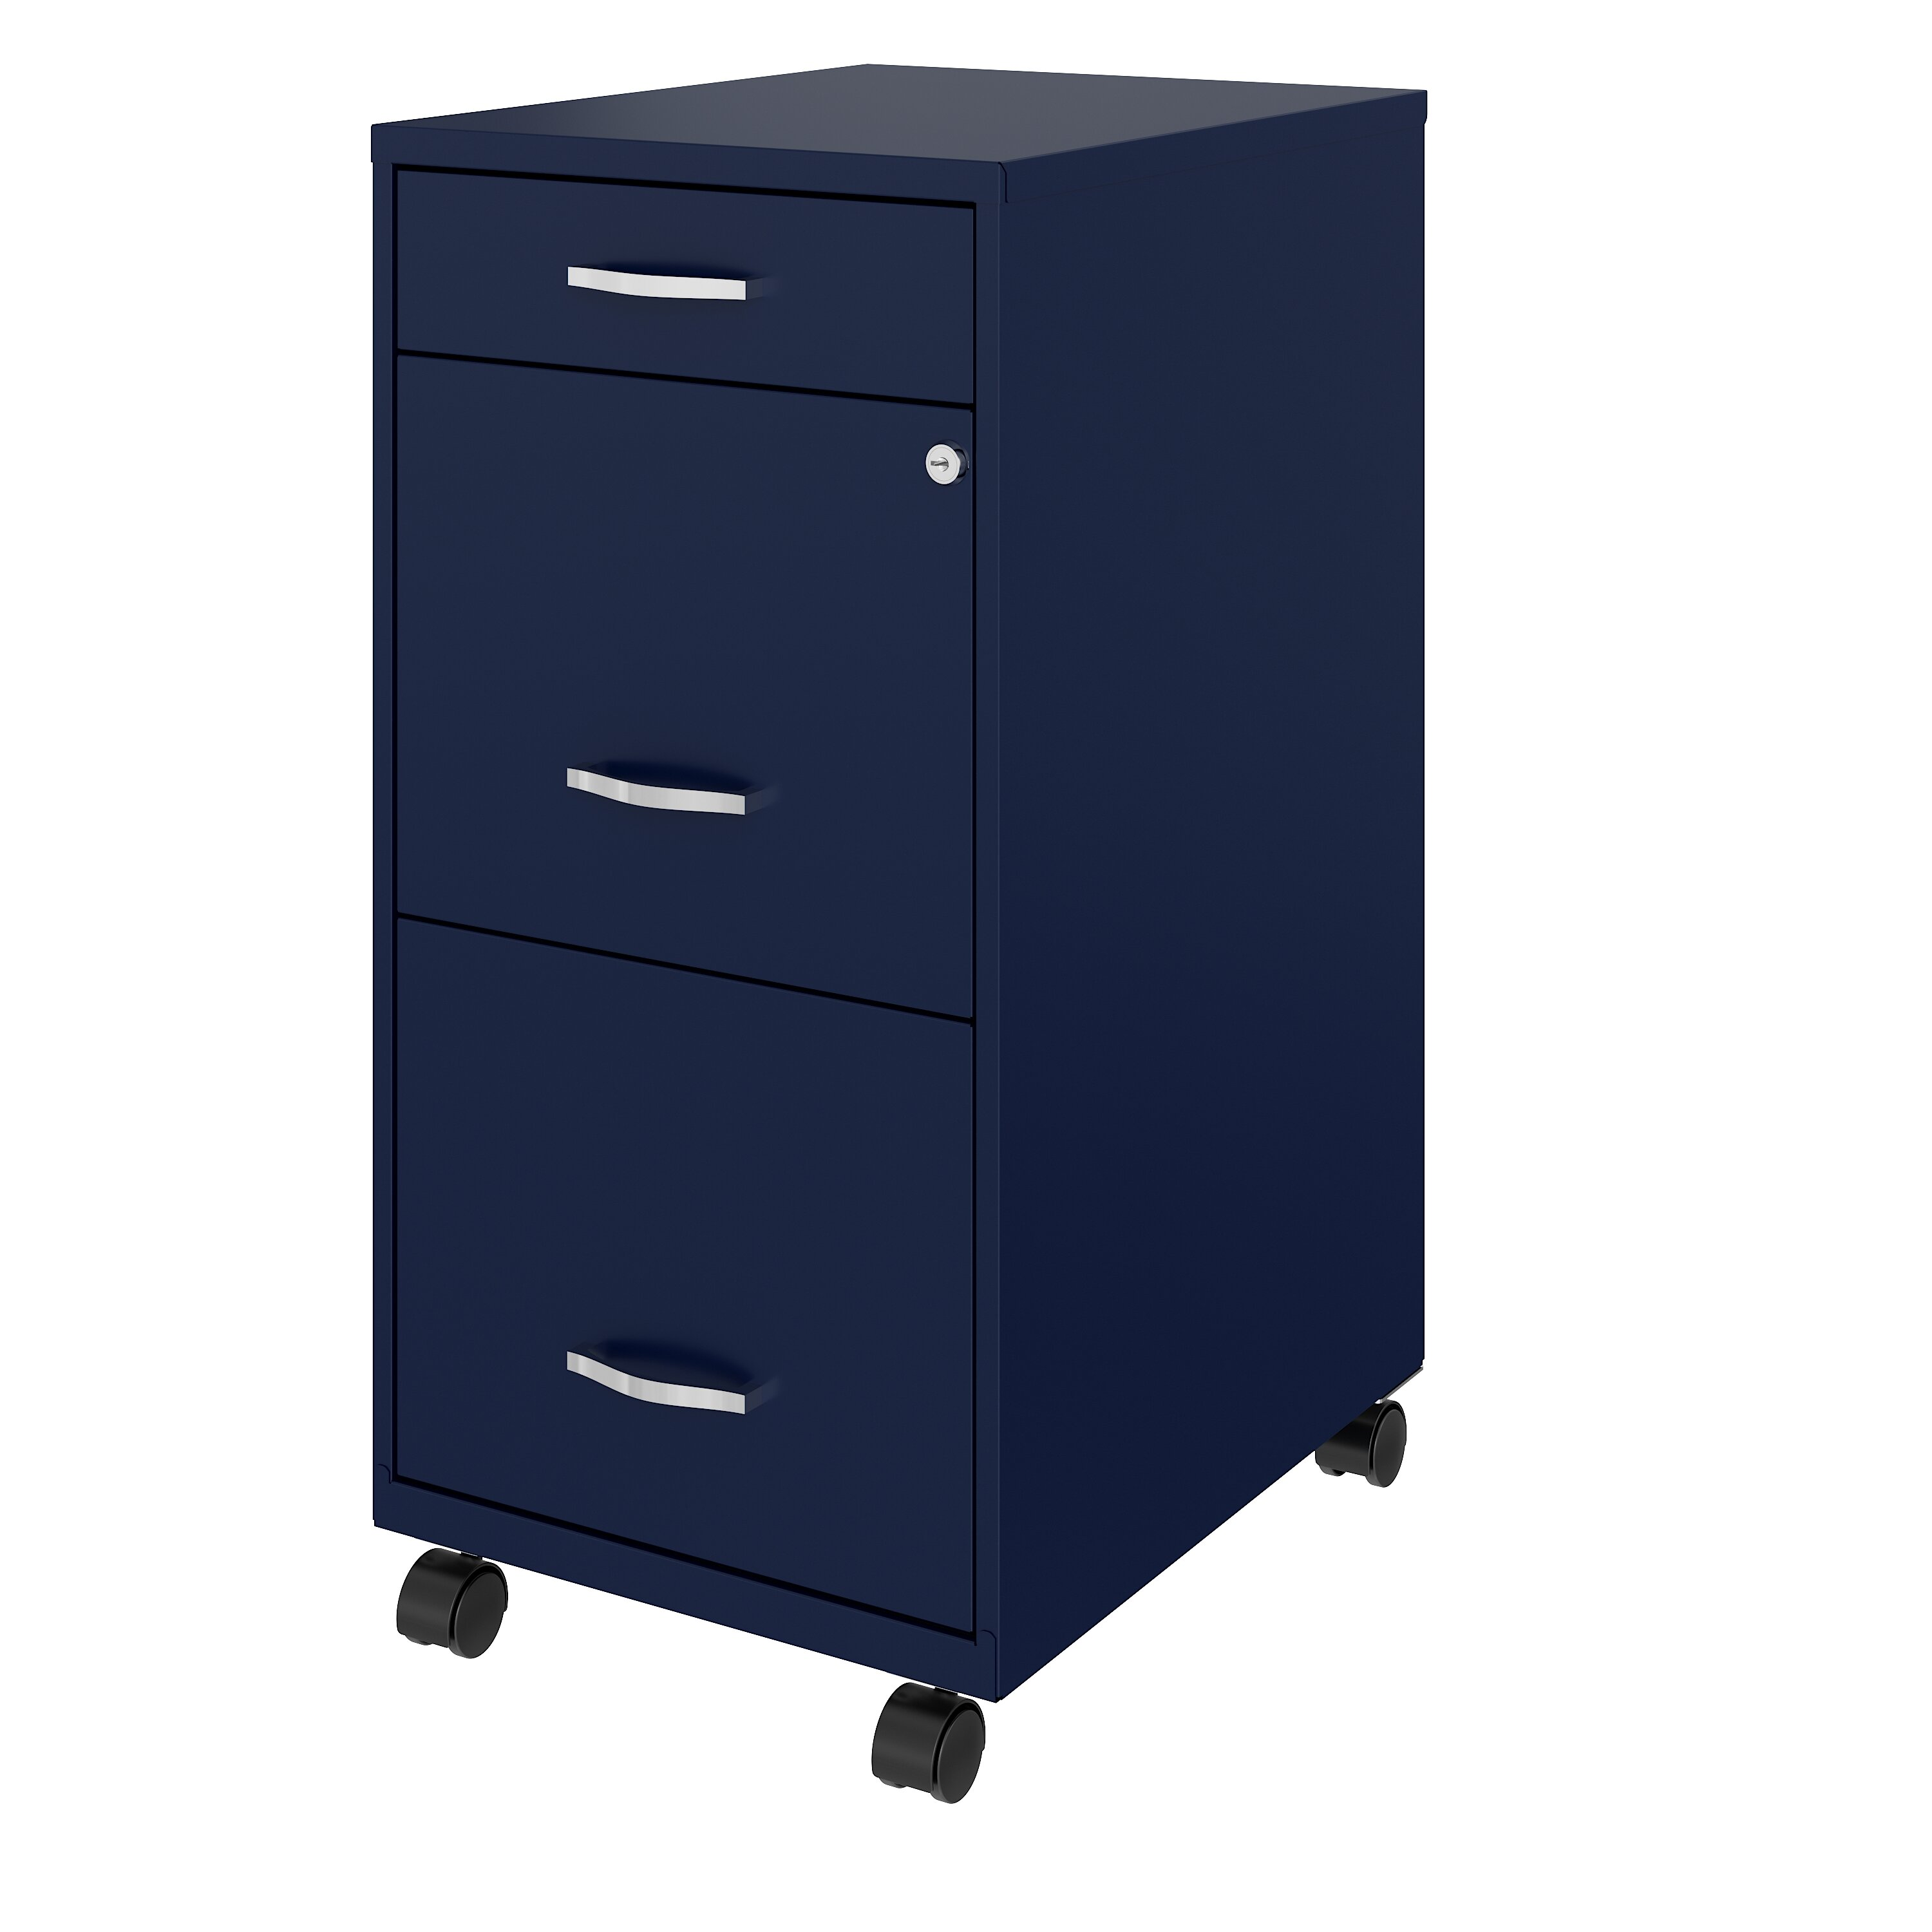 AUTSCA 3 Drawer Filing Cabinet Office Drawers with Lock Metal Mobile File Cabinet with Anti-tilt Mechanism Black Fully Assembled Except Wheels A4//Legal//Letter Size